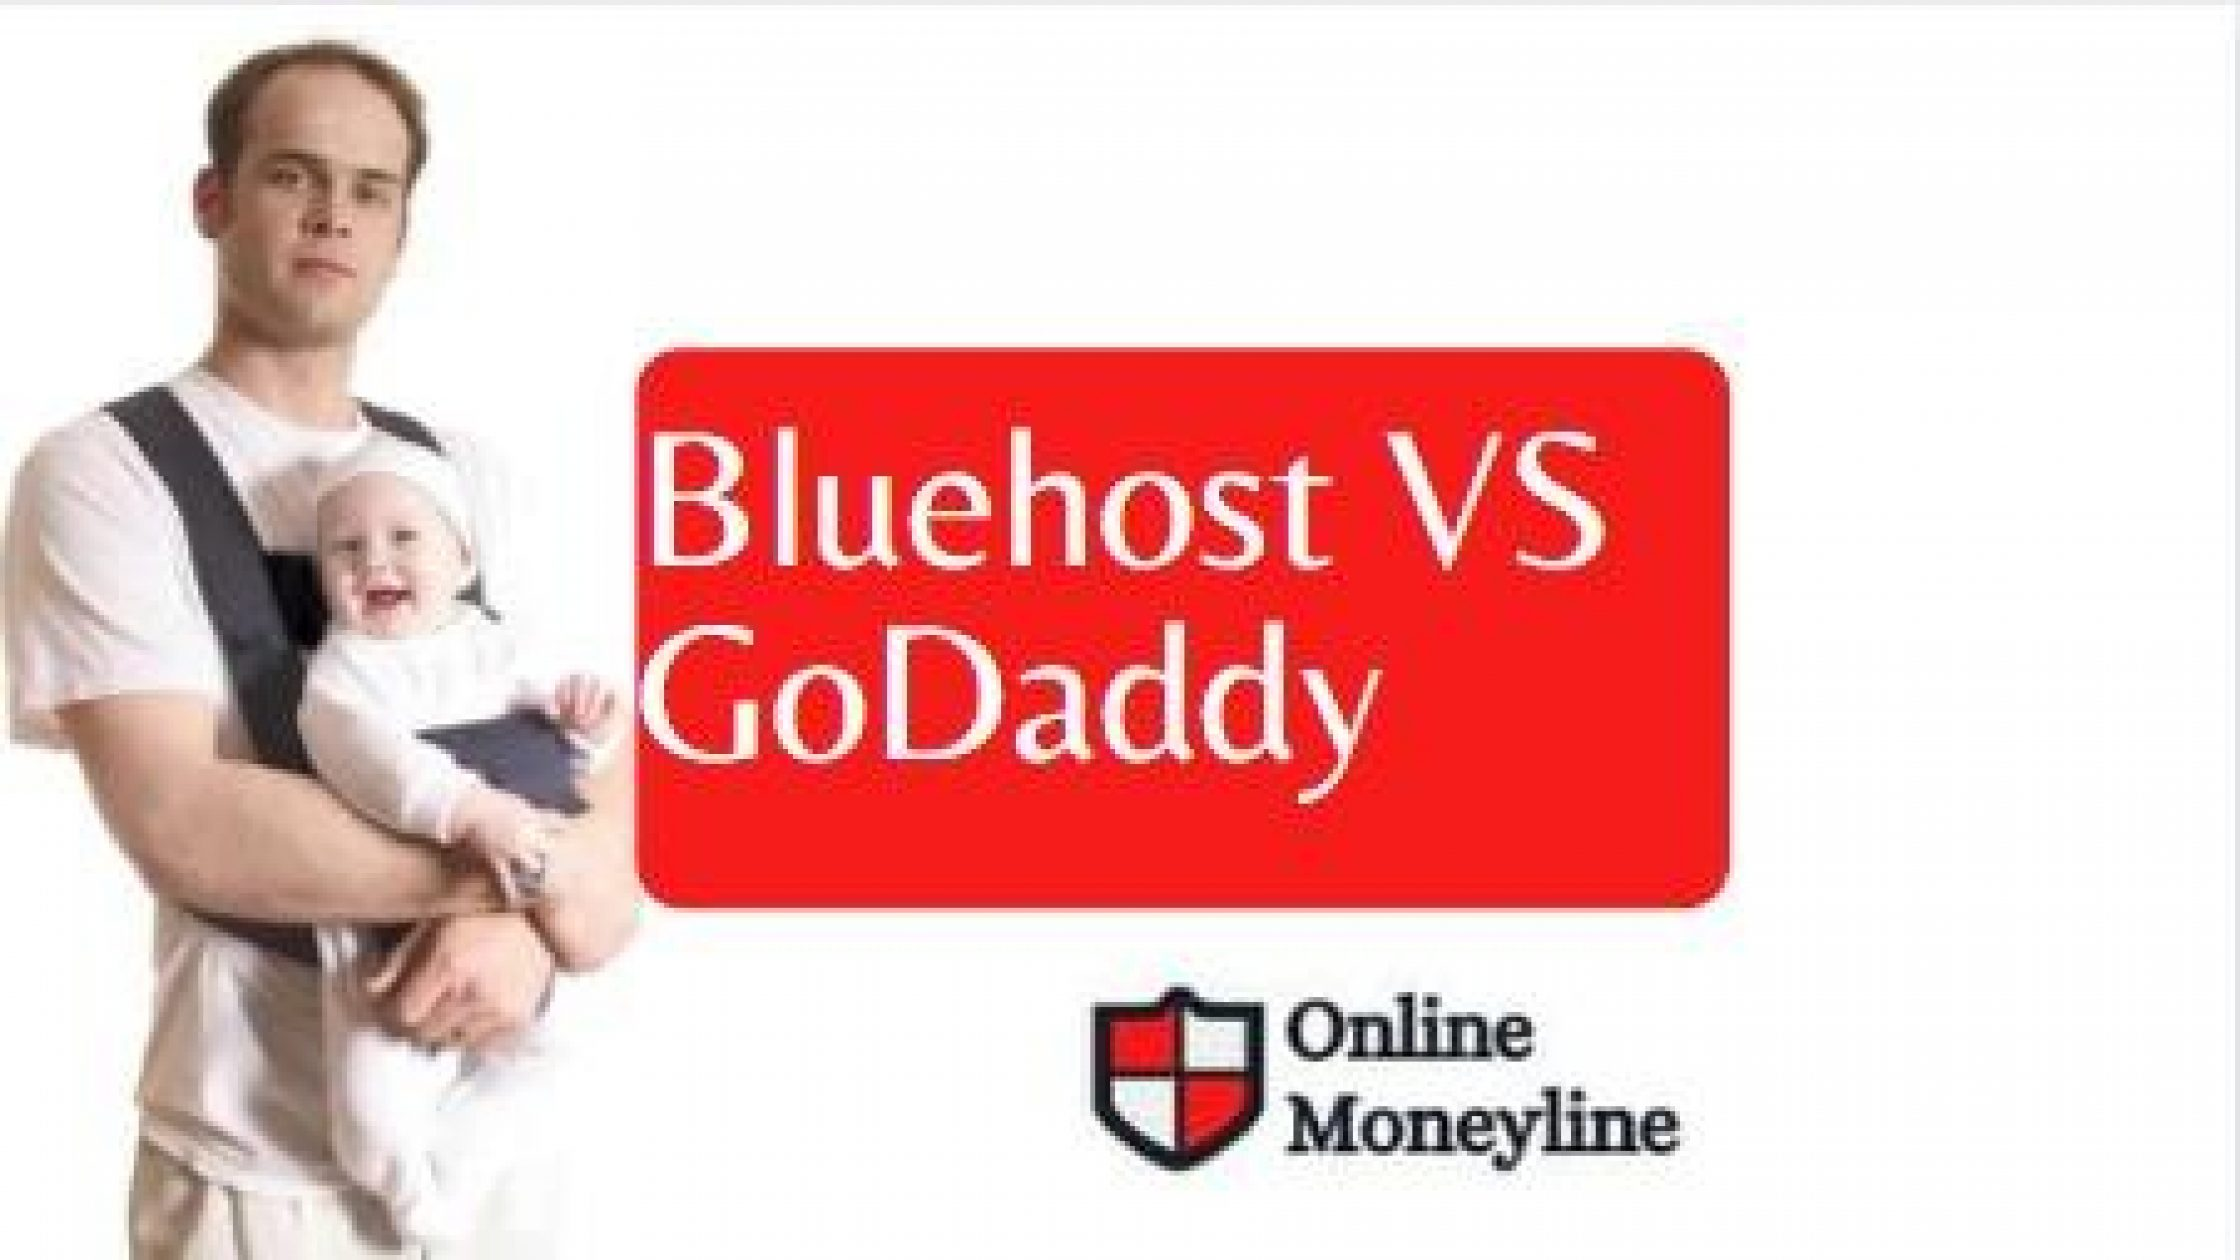 Bluehost vs GoDaddy | All You Need To Know